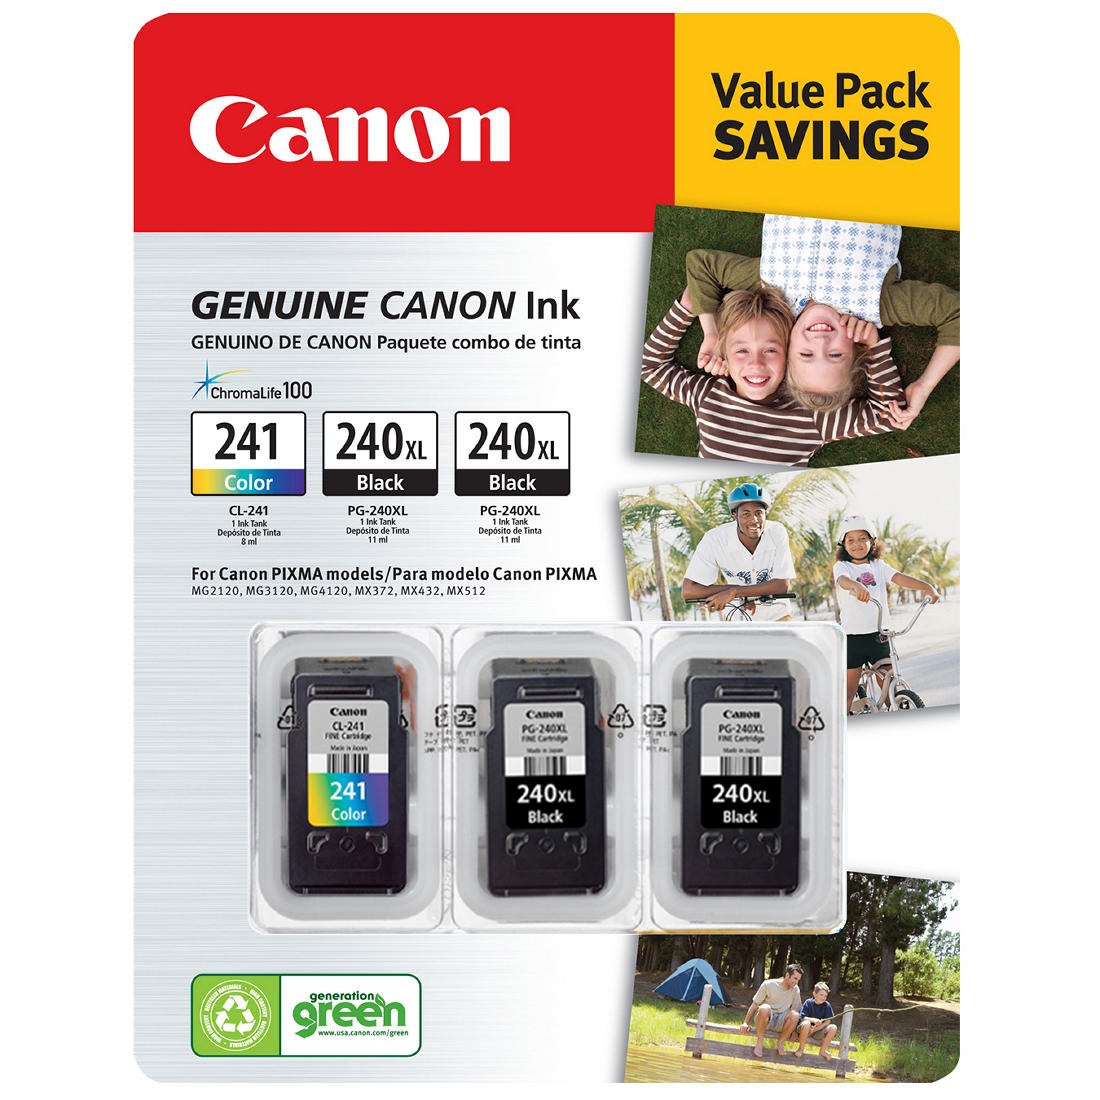 Canon PG-240XL Office Products FINE Cartridge Ink 2-PACK